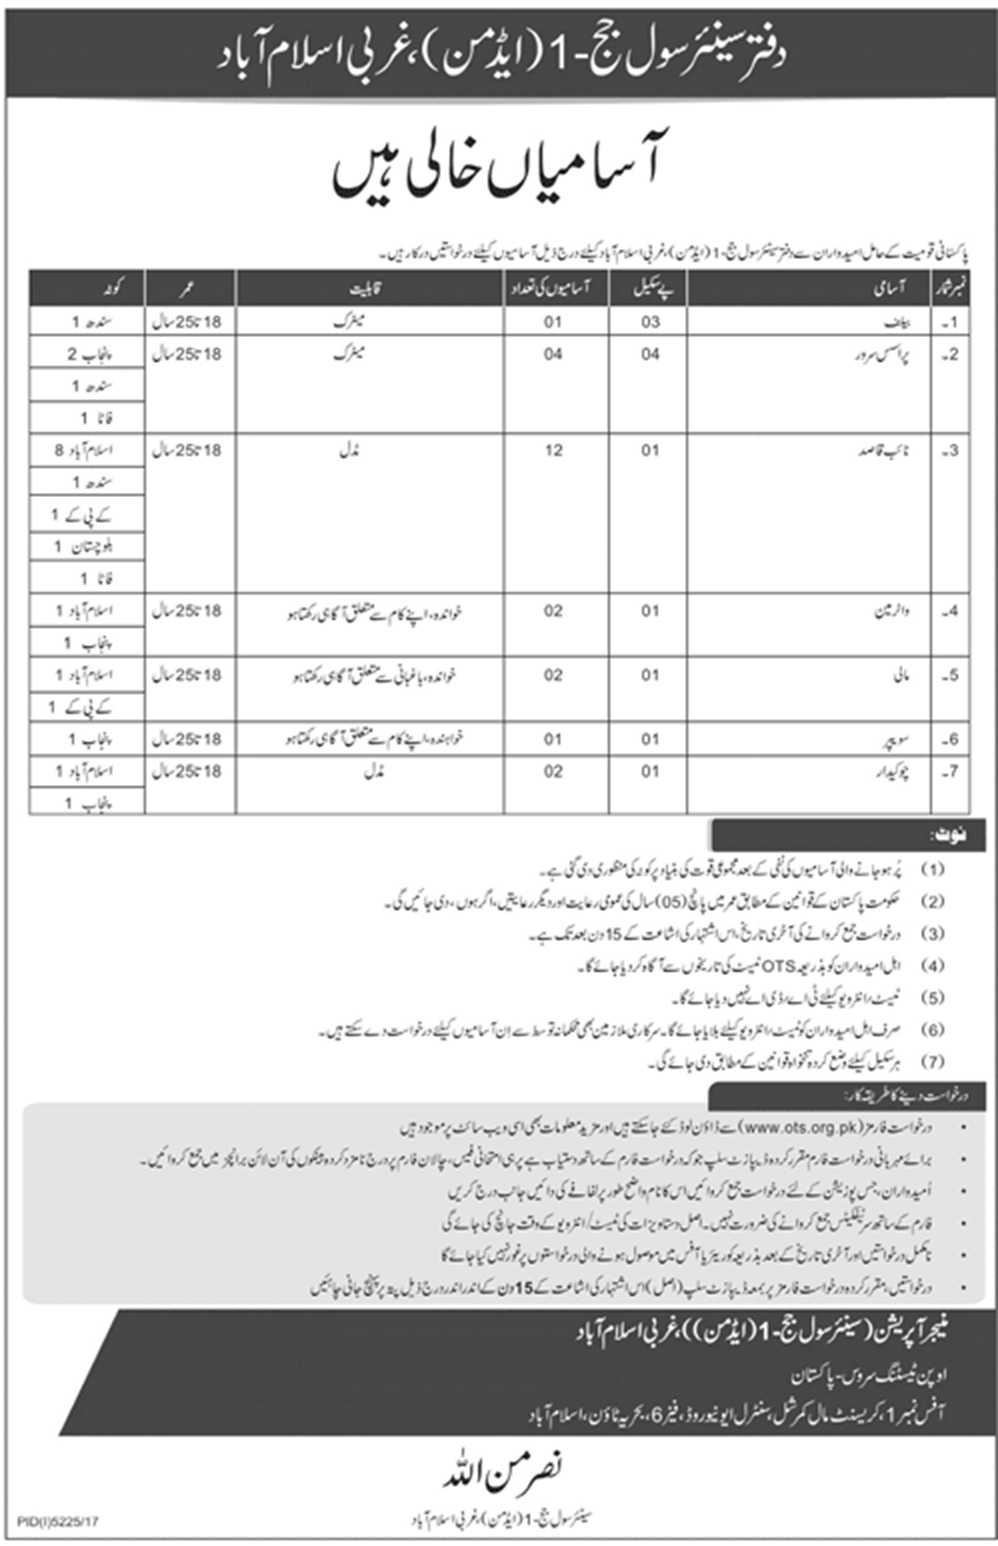 OTS Jobs in Office Senior Civil Judge-I West Islamabad 2018 Online Applicatin Form Download